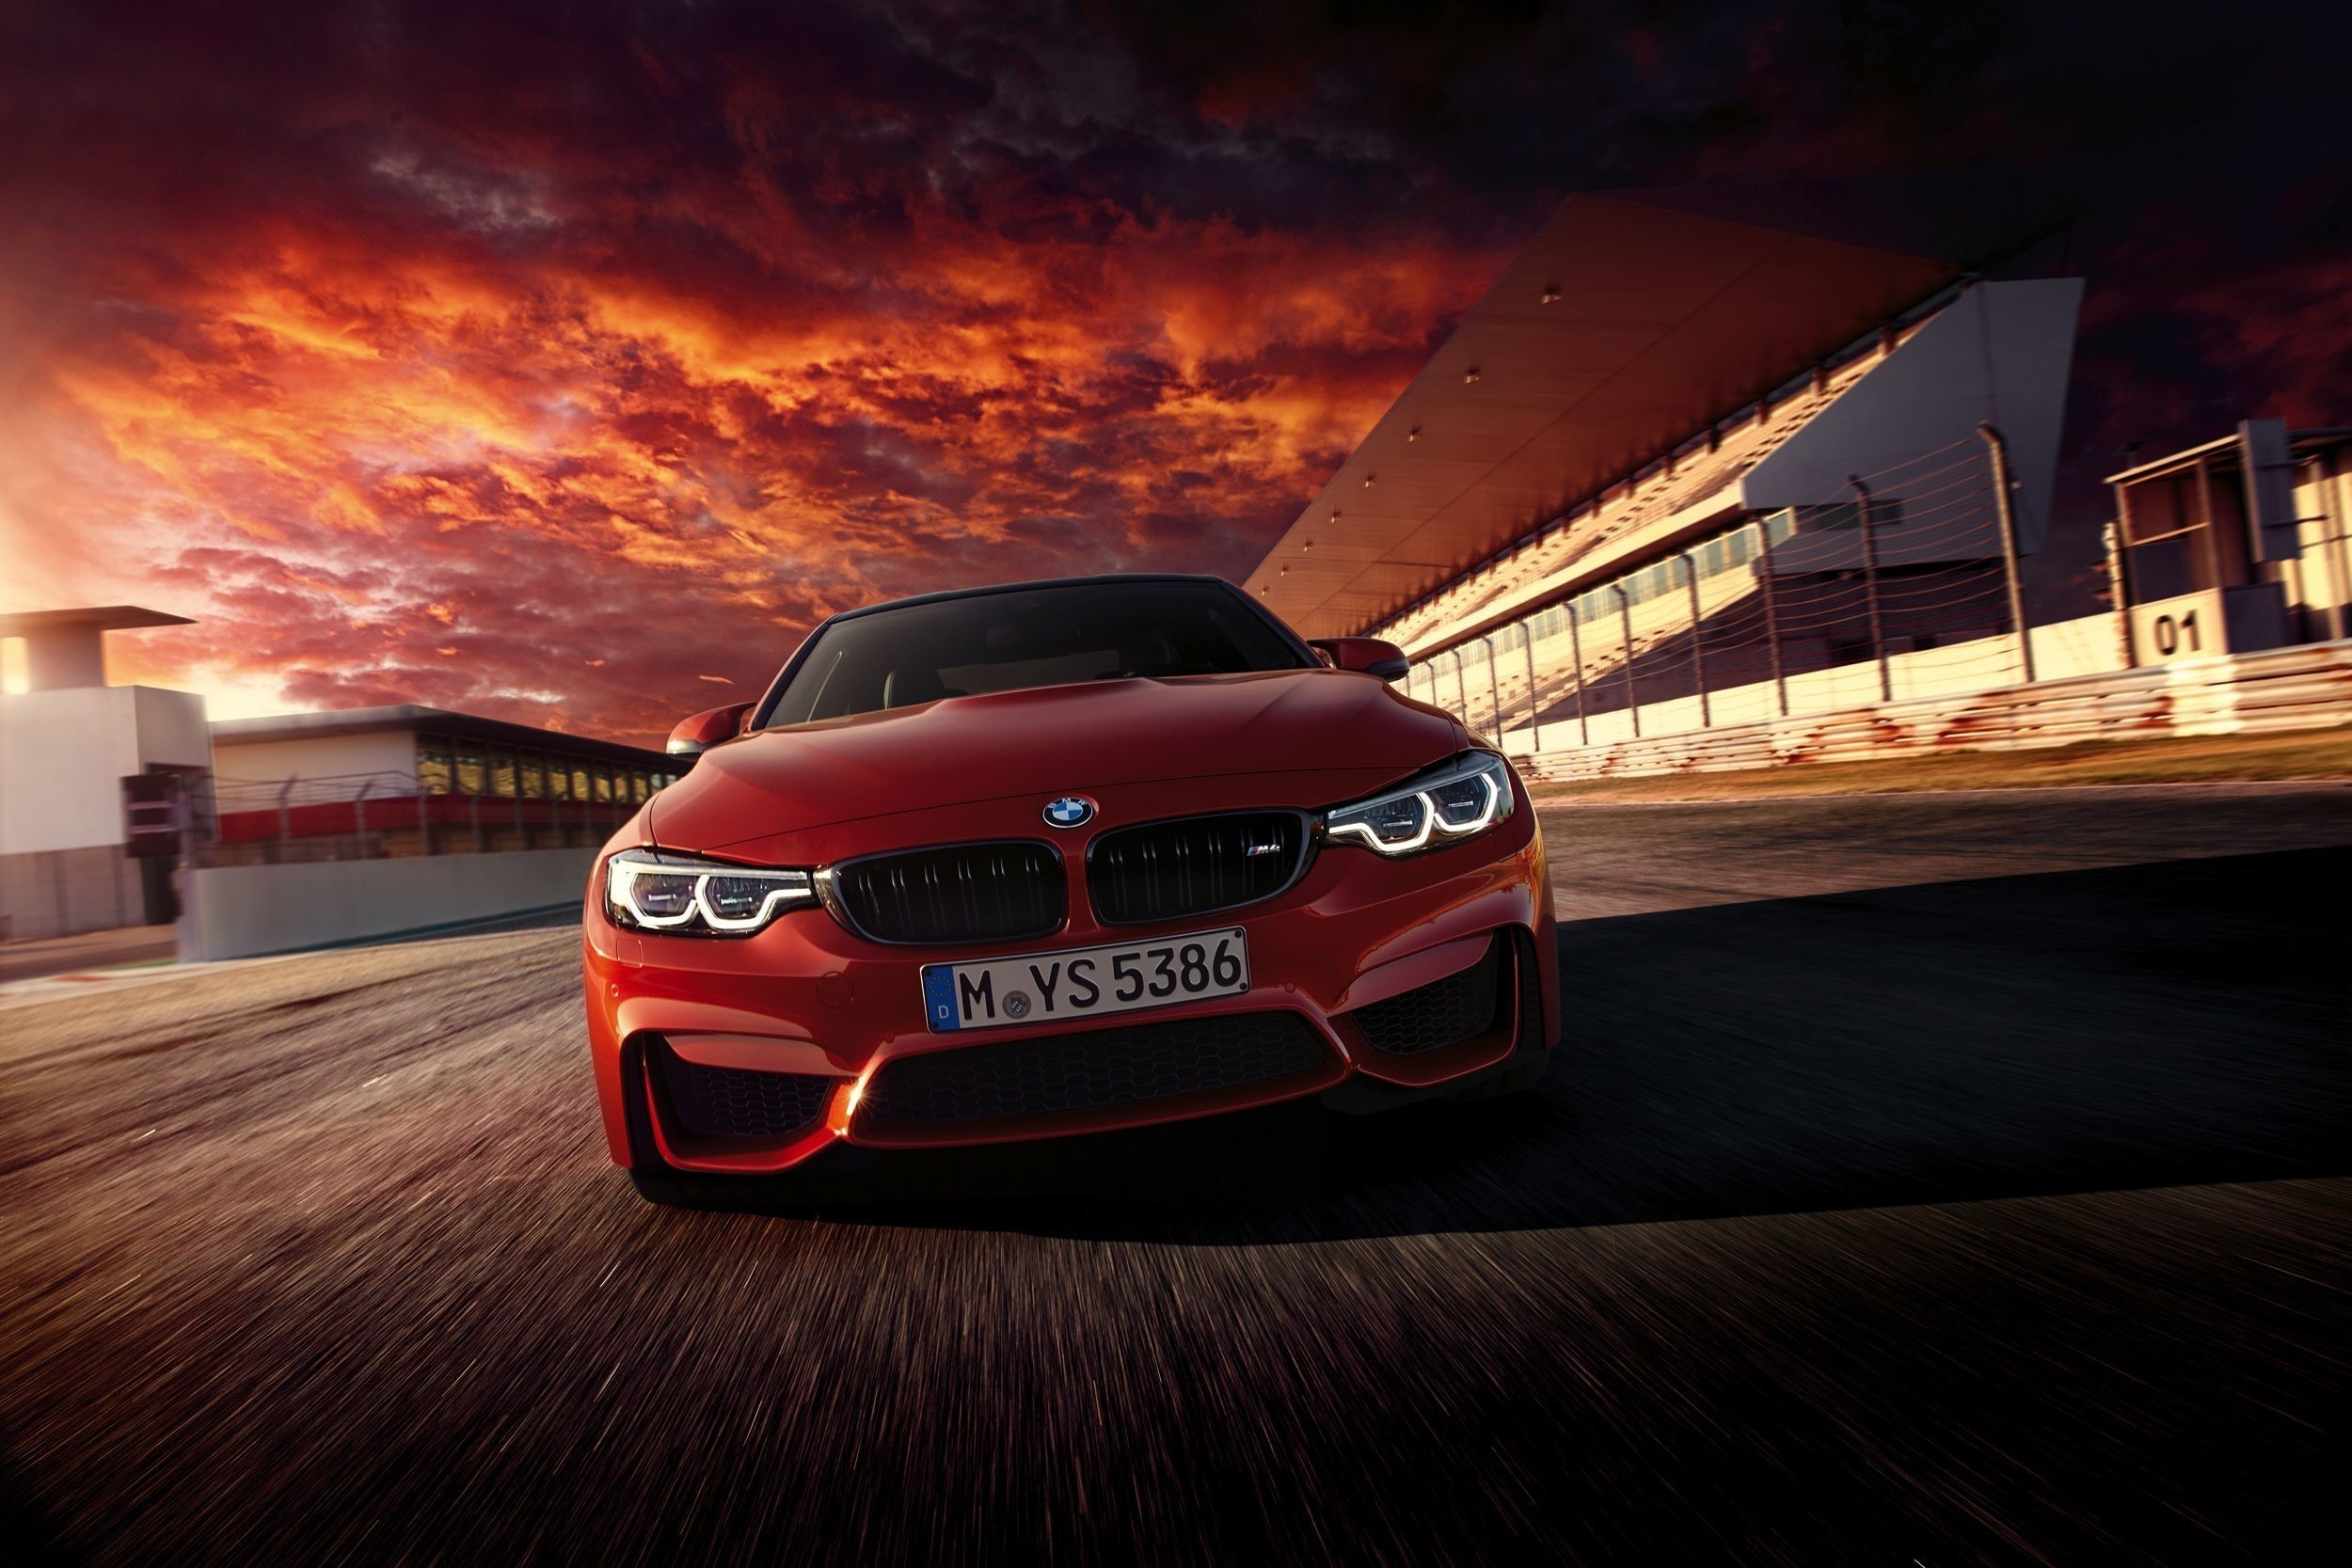 4K BMW Mobile HD Wallpaper